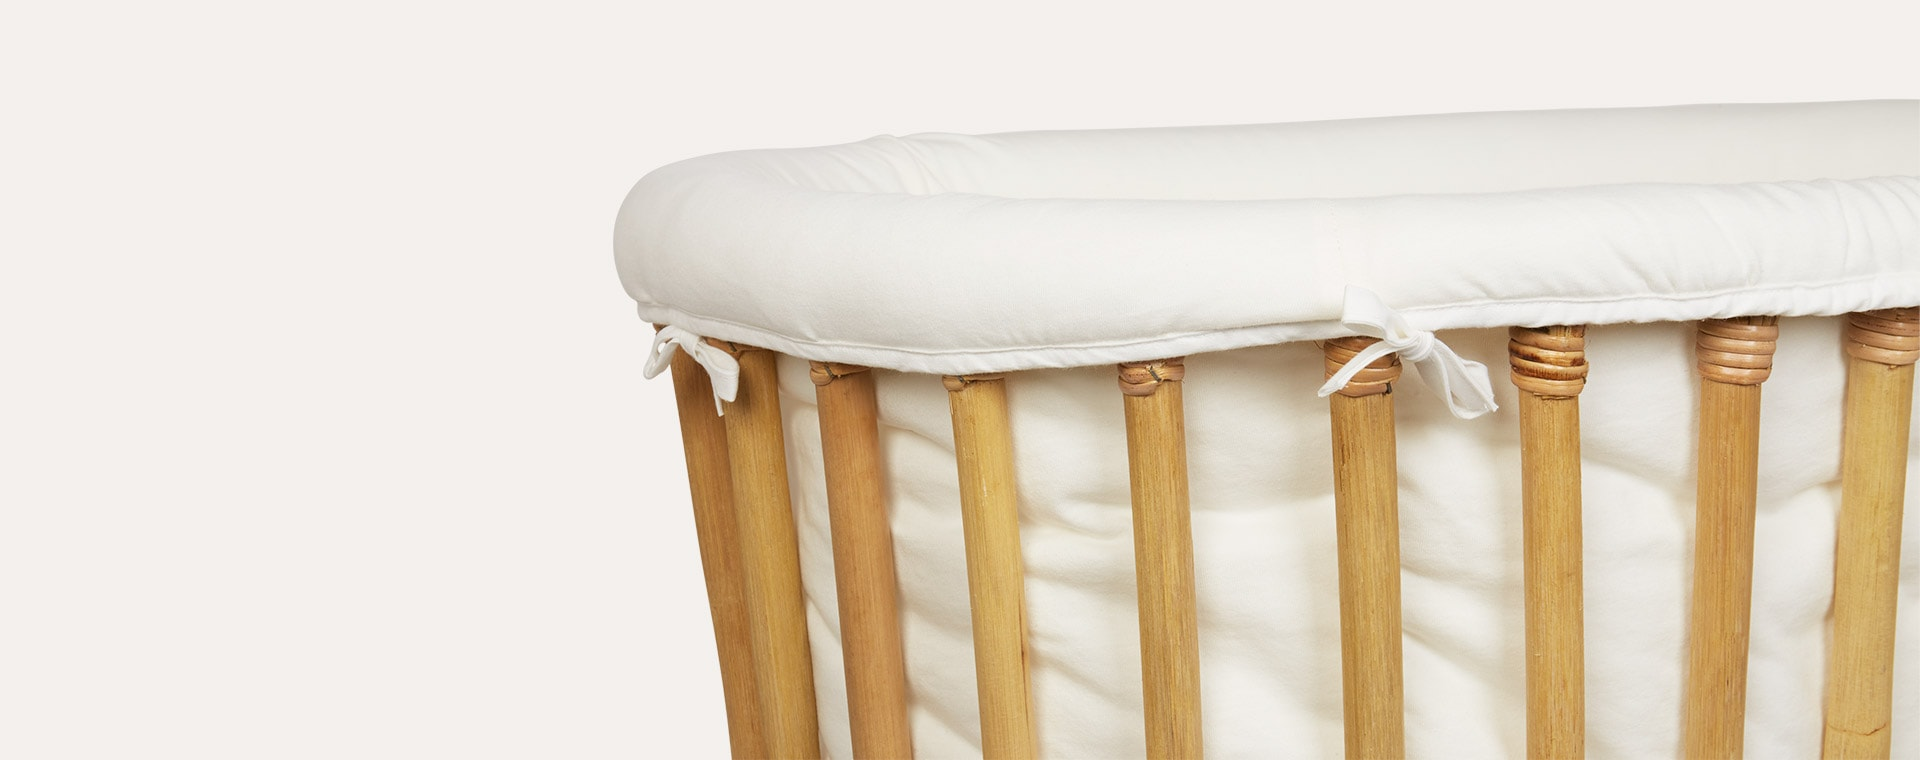 Ecru Childhome Rattan Cradle Cover